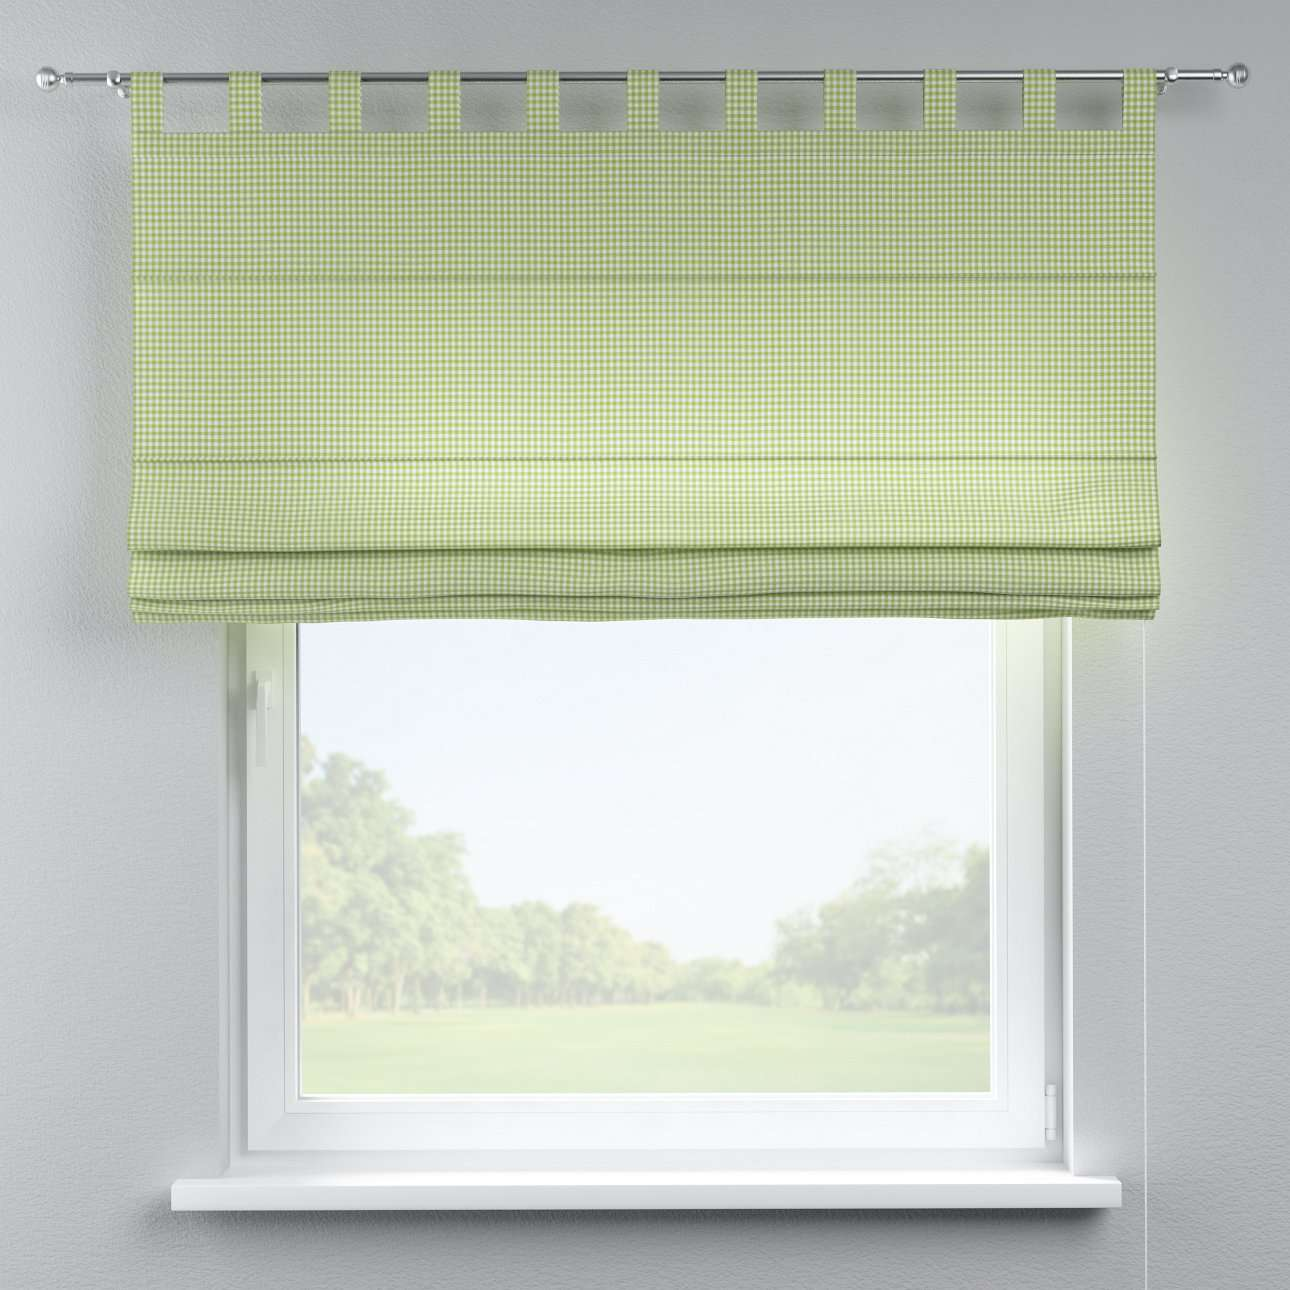 Verona tab top roman blind 80 x 170 cm (31.5 x 67 inch) in collection Quadro, fabric: 136-33